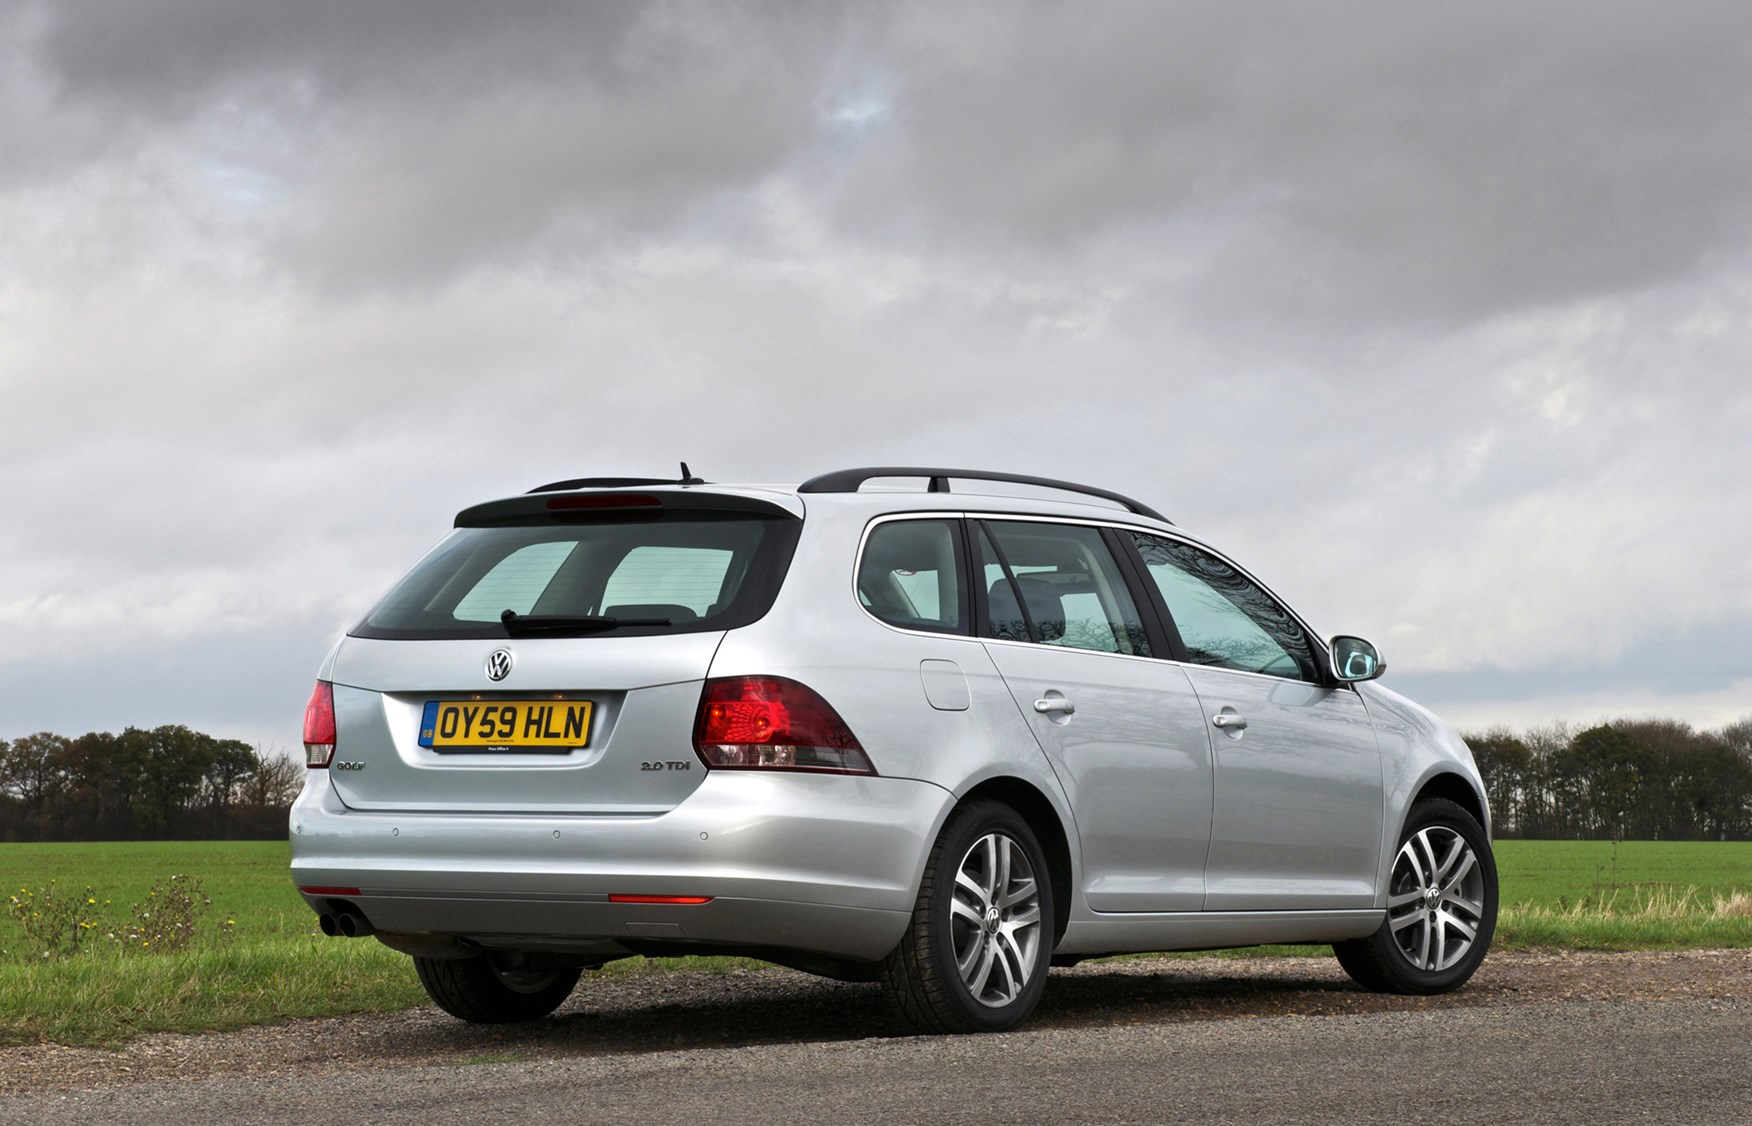 Golf Gtd Review >> Volkswagen Golf Estate Review (2009 - 2013) | Parkers